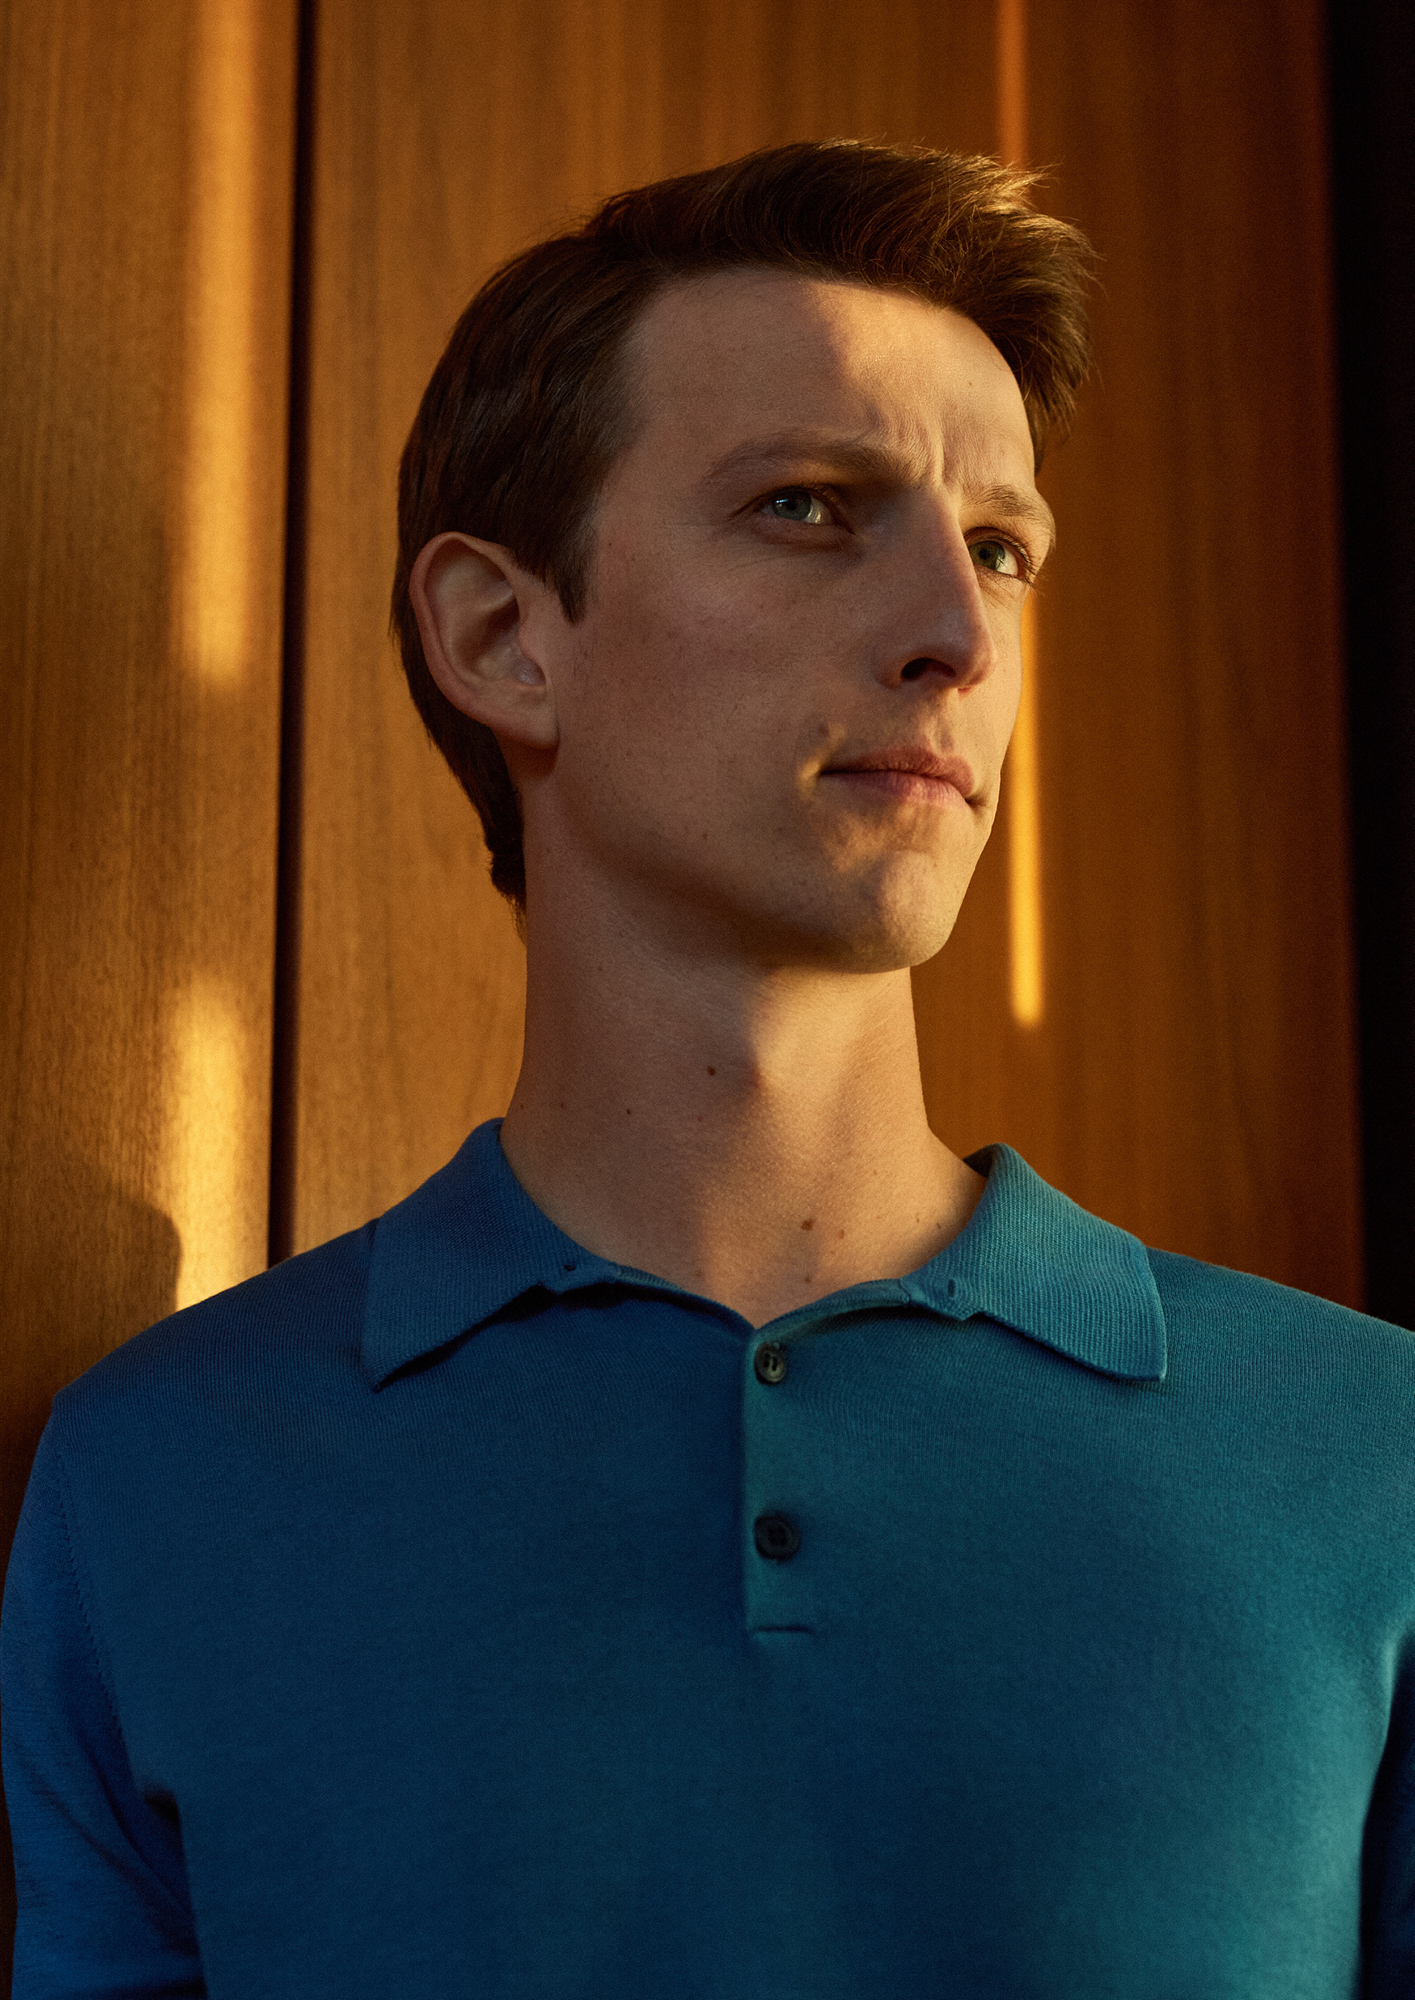 The Sea Island Cotton Knit LS Polo Shirt in Airforce, £225